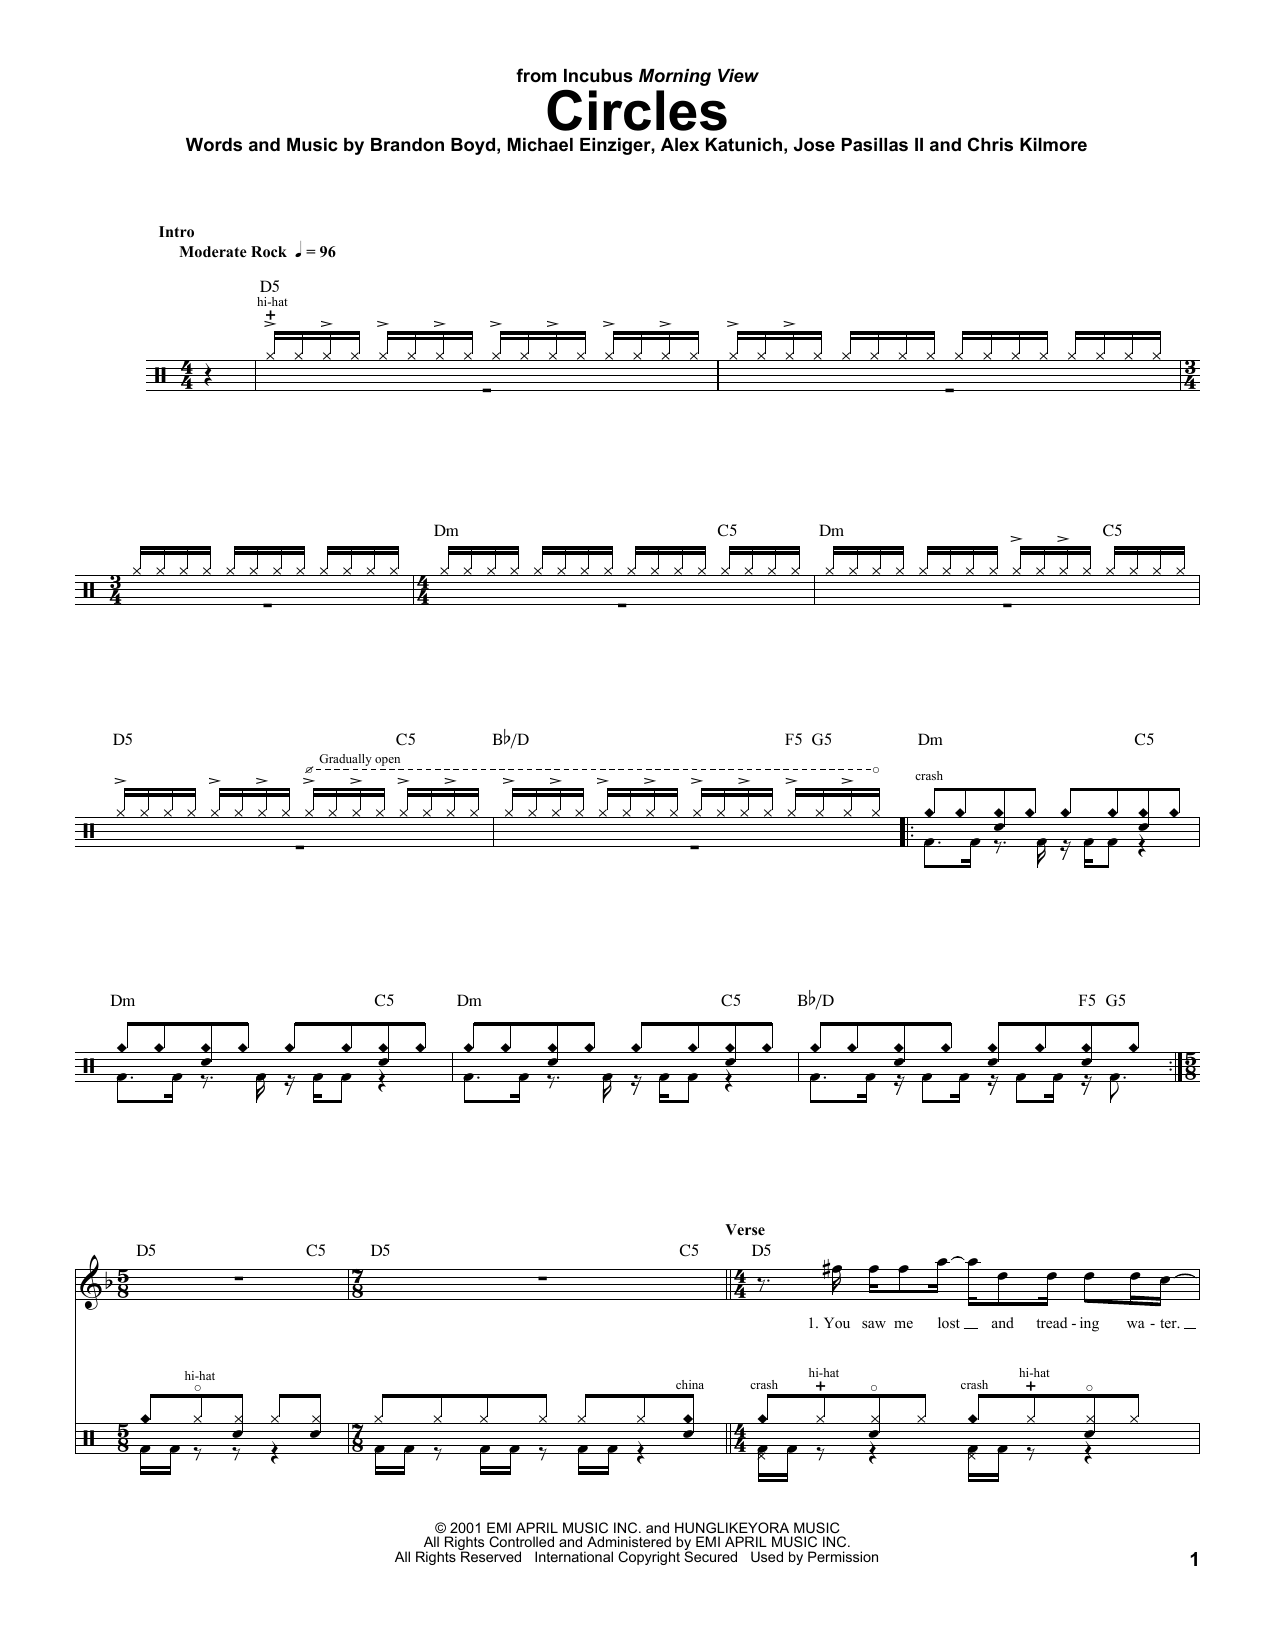 Sheet music digital files to print licensed incubus digital sheet music digital files to print licensed incubus digital sheet music hexwebz Image collections